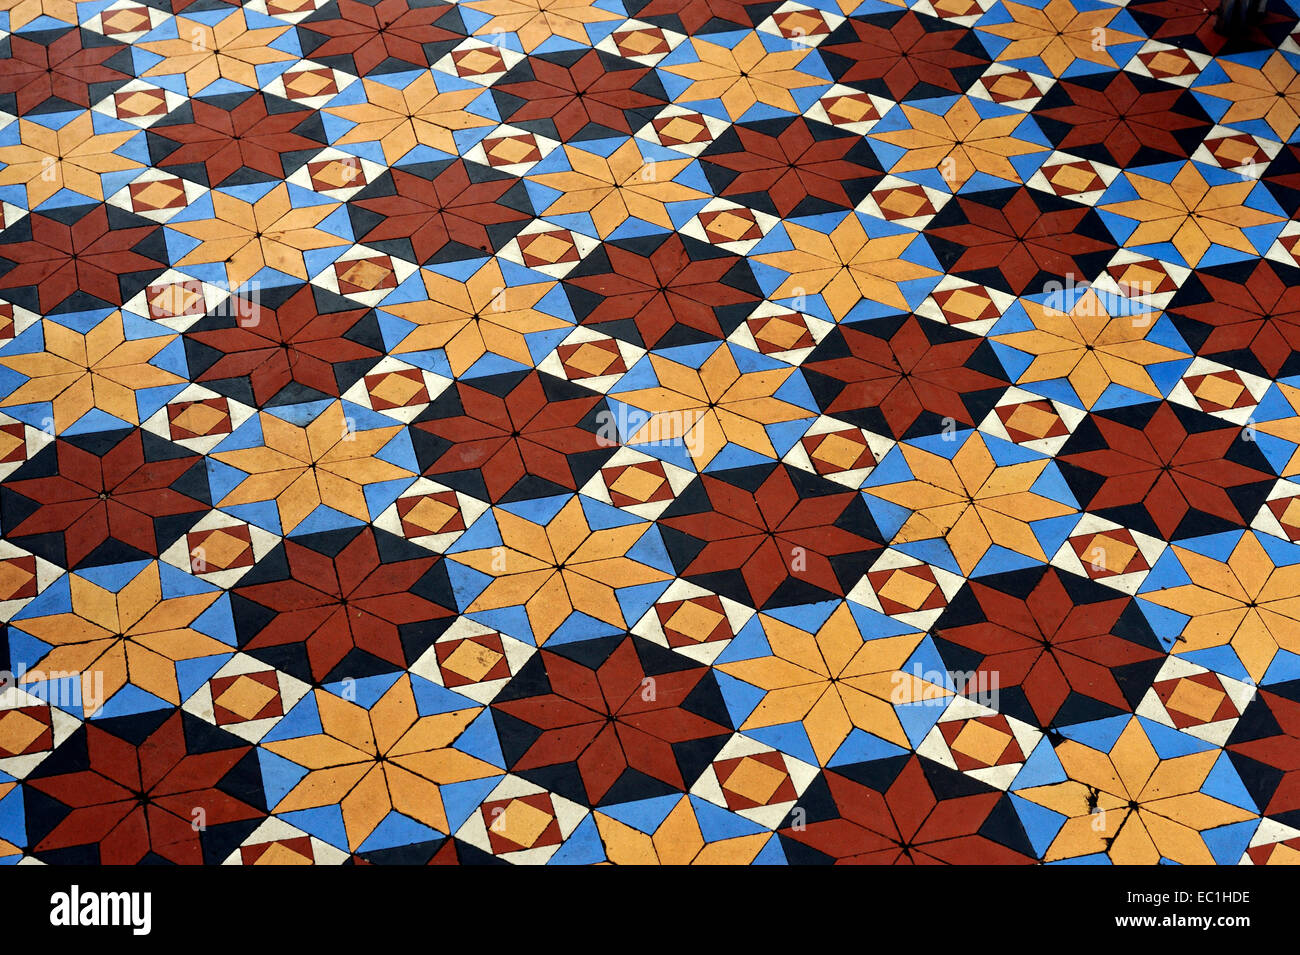 Dickens - Gad's Hill Place (Gadshill) conservatory tiled floor. English novelist Charles Dickens lived here at Higham - Stock Image